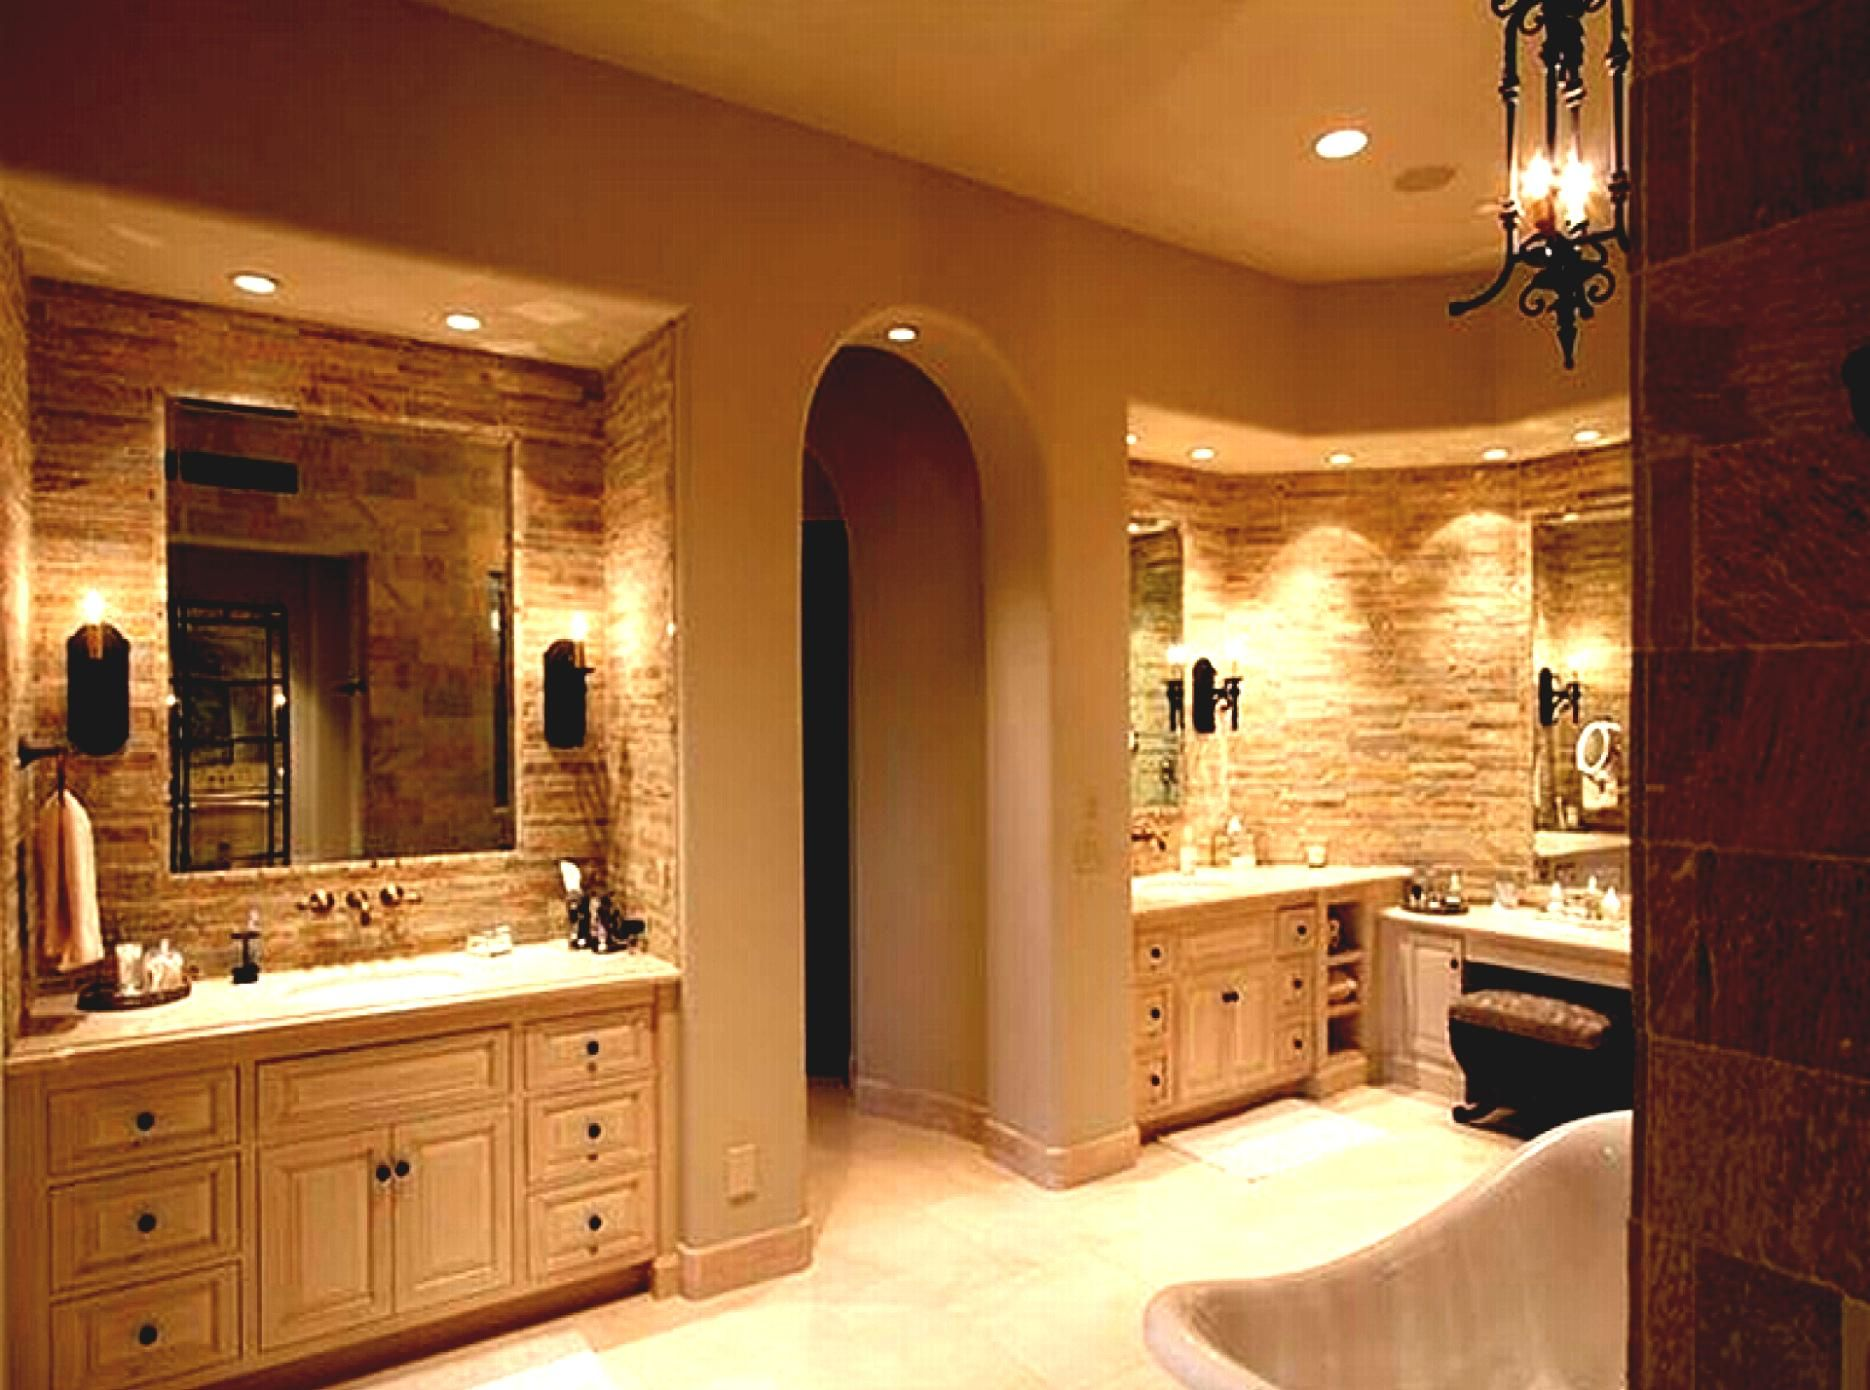 Find This Pin And More On Bathroom Design 2017 2018.